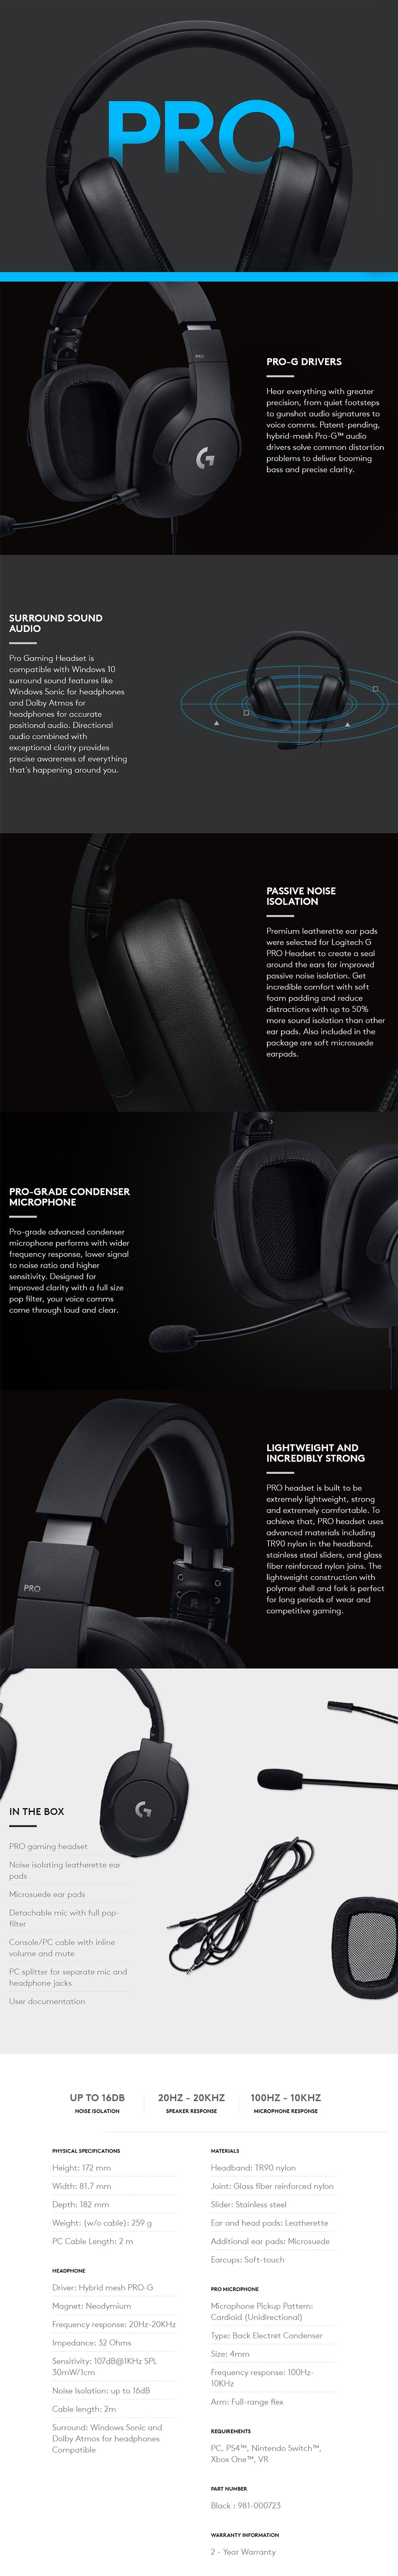 Logitech G Pro Gaming Headset - Desktop Overview